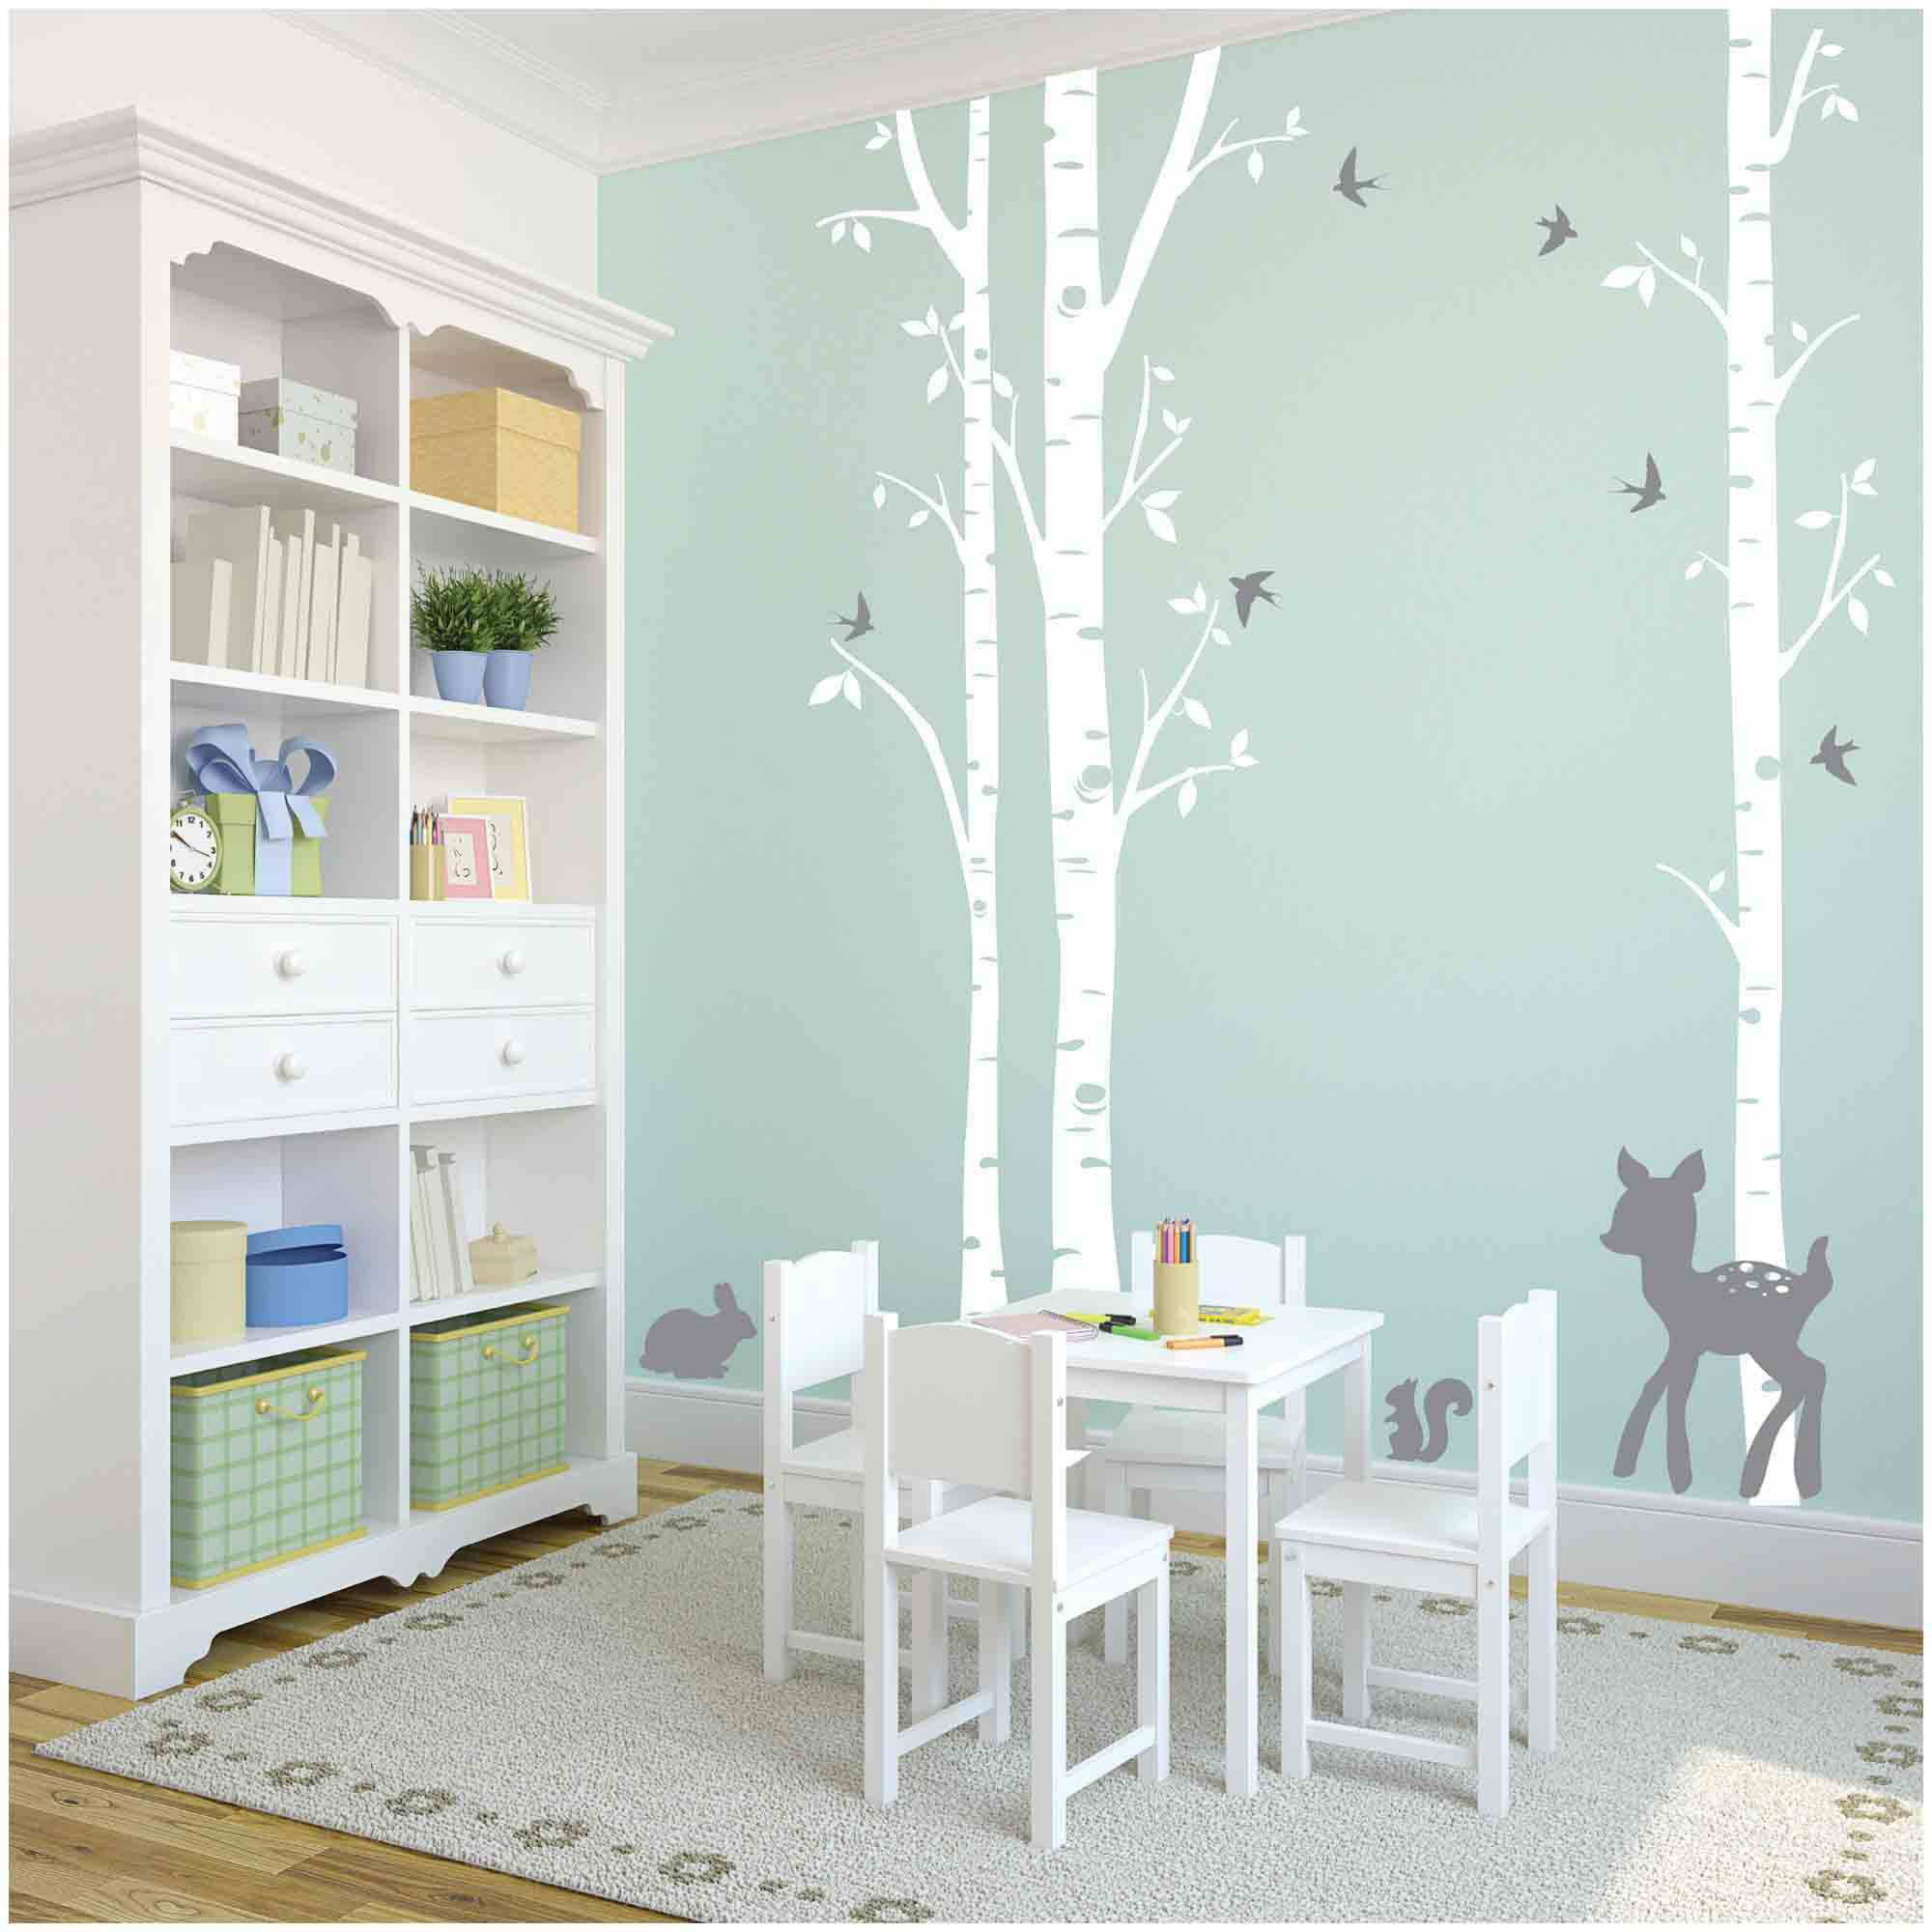 Owl Hills 3 Birch Trees Wall Stickers White With Grey Fawn Bunny Squirrel And Birds